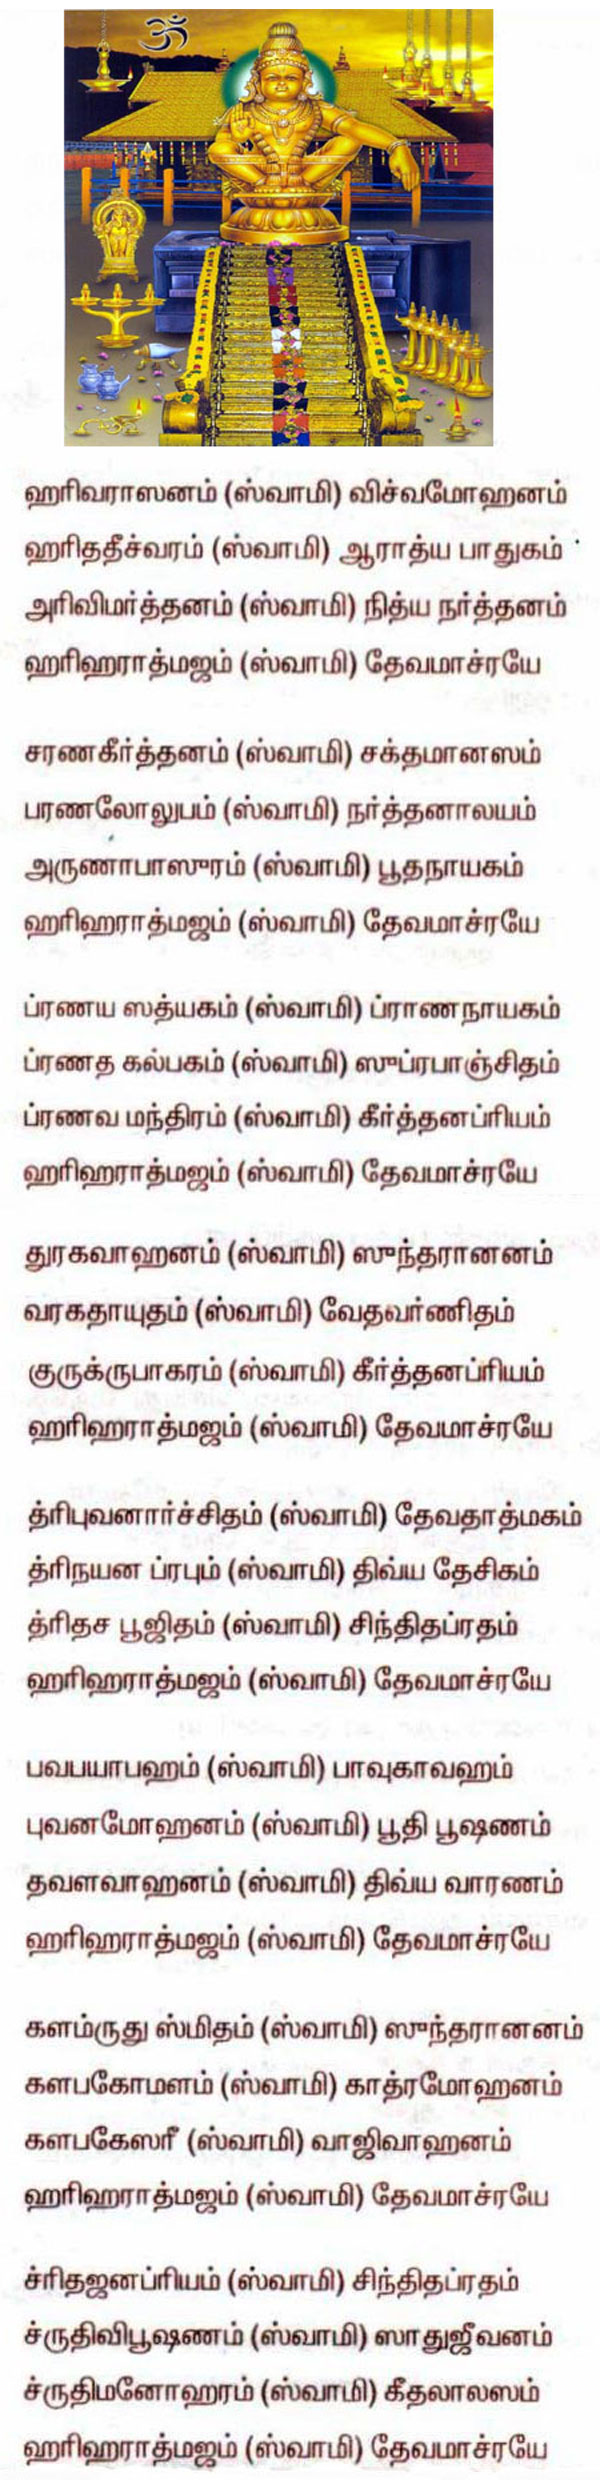 Harivarasanam Song Lyrics in Tamil